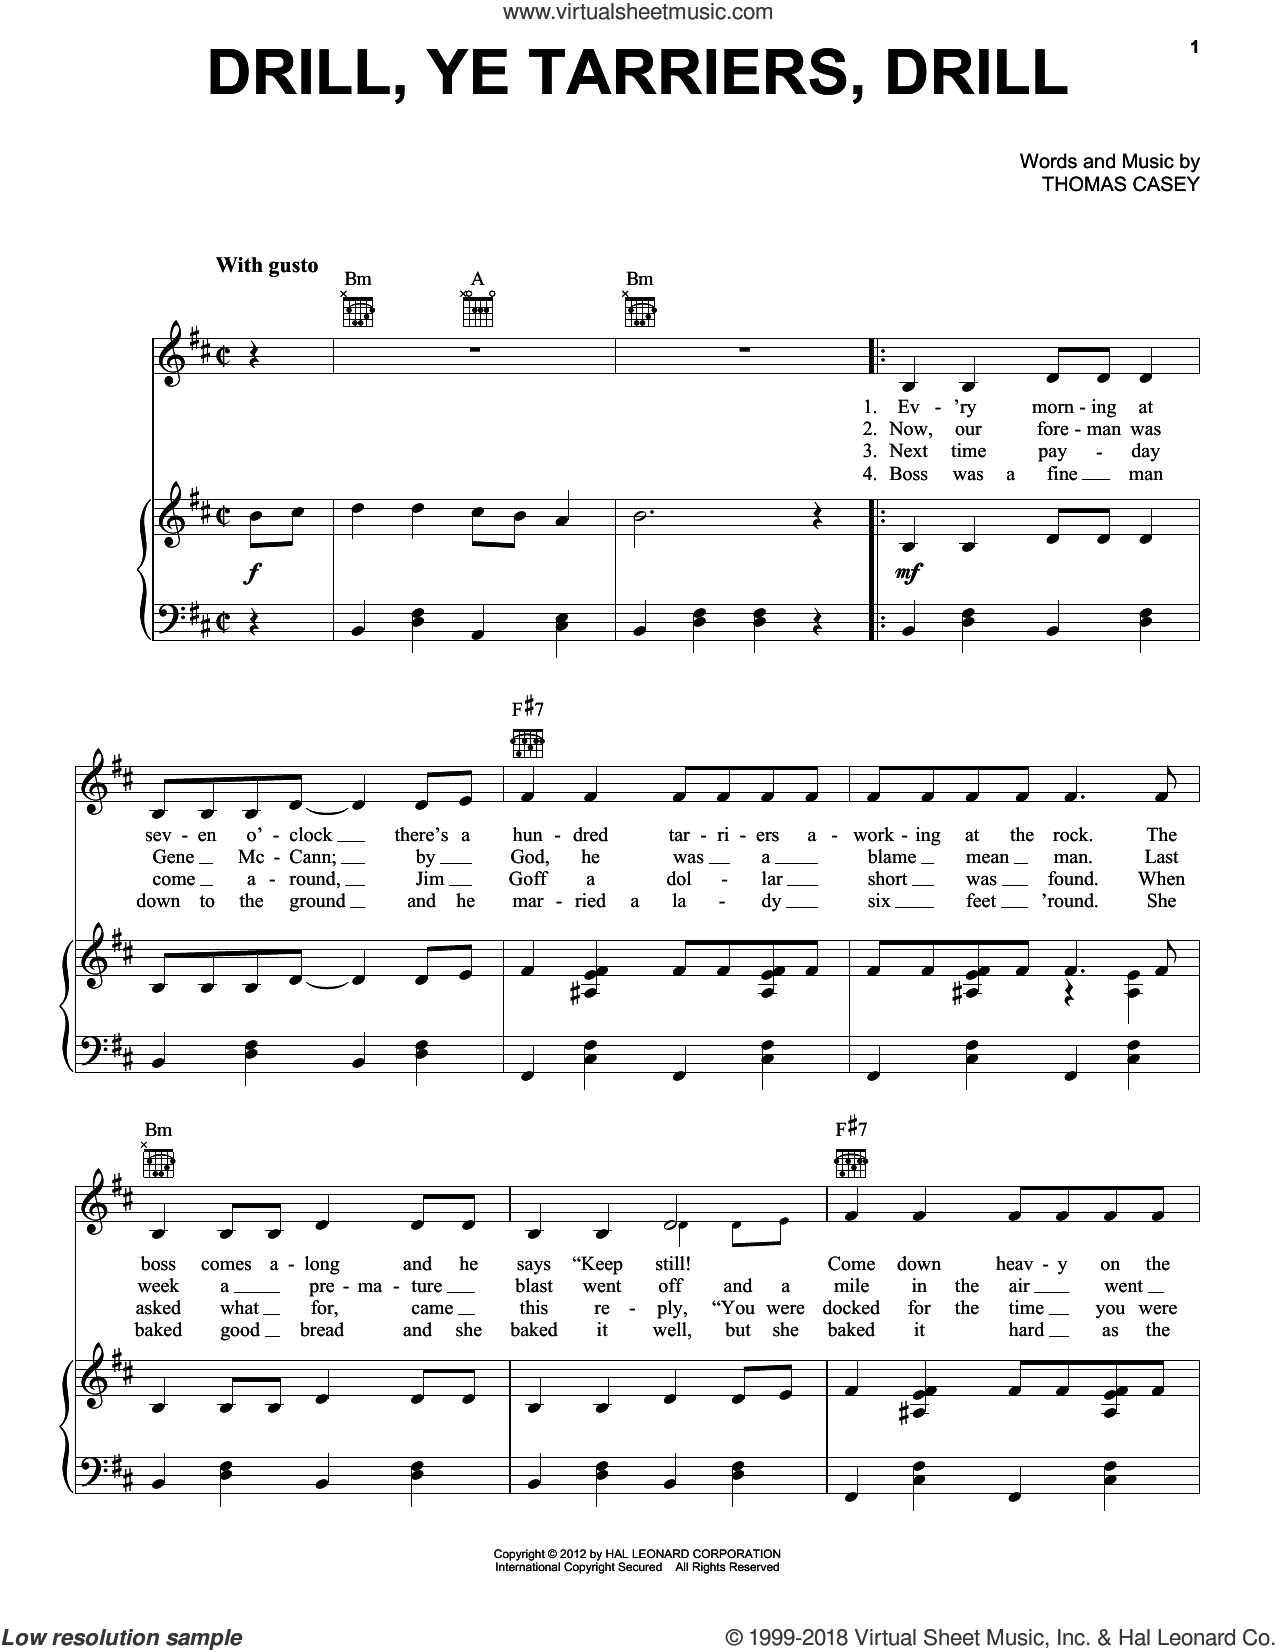 Drill Ye Tarriers sheet music for voice, piano or guitar by Thomas Casey, intermediate voice, piano or guitar. Score Image Preview.